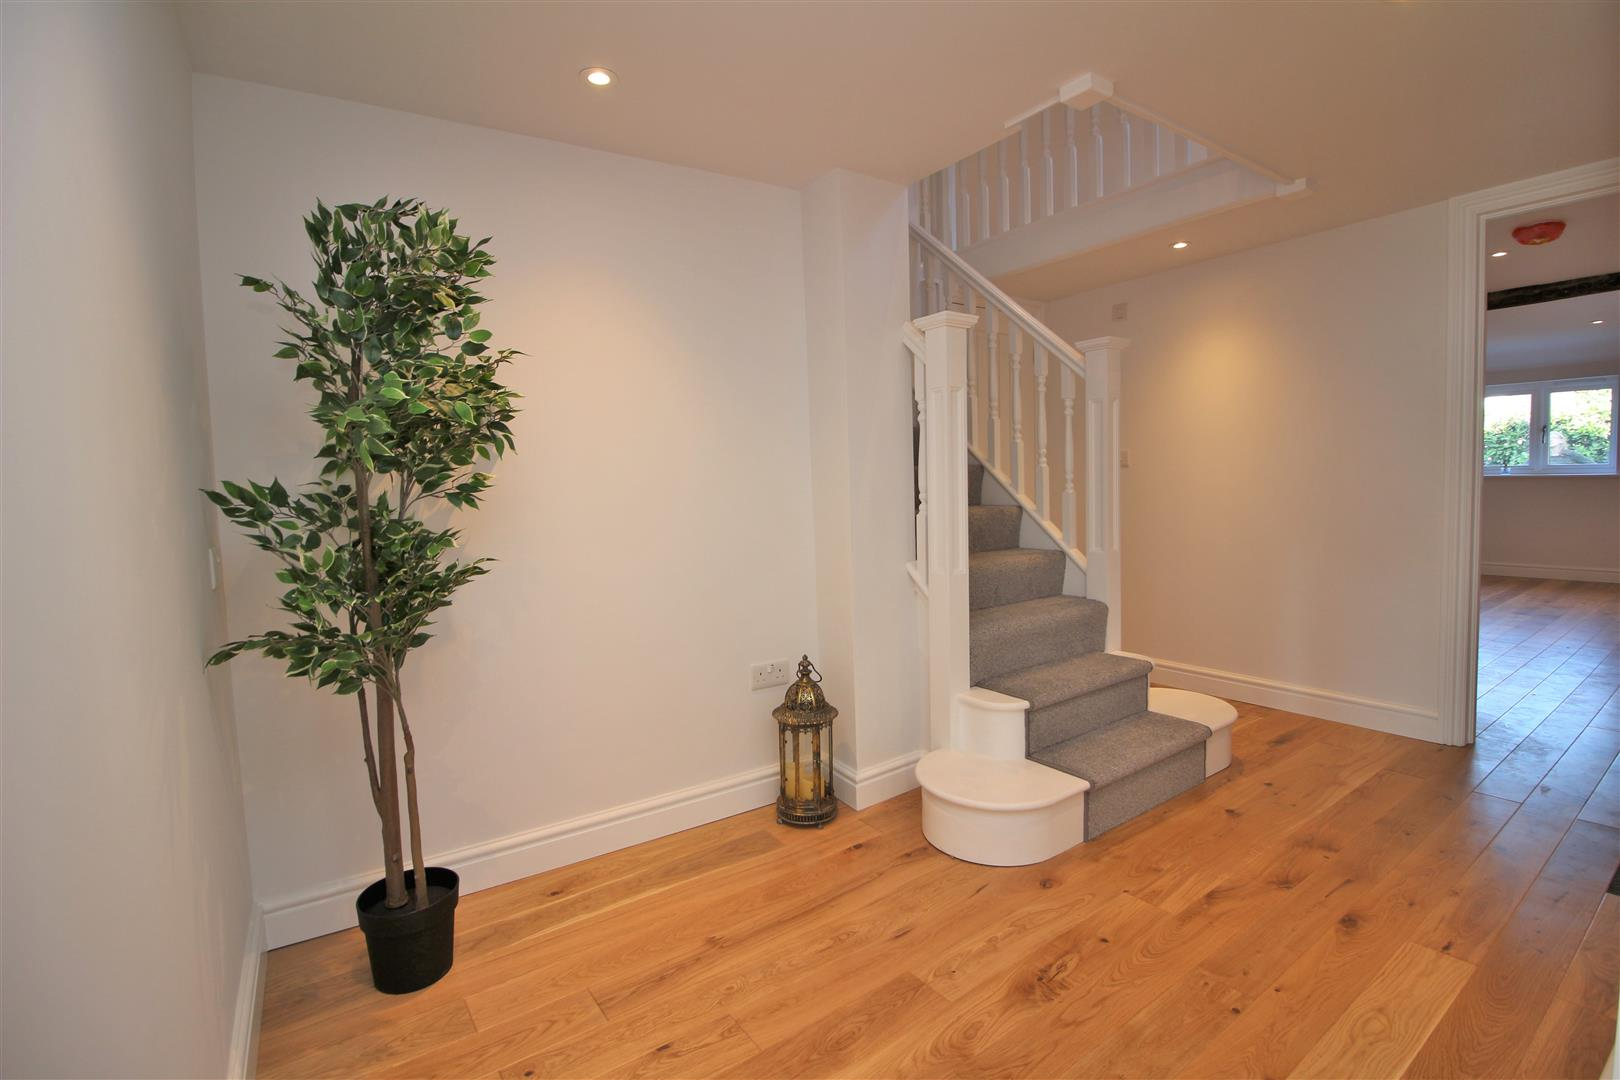 4 bed for sale in London Road, Shenley - (Property Image 2)